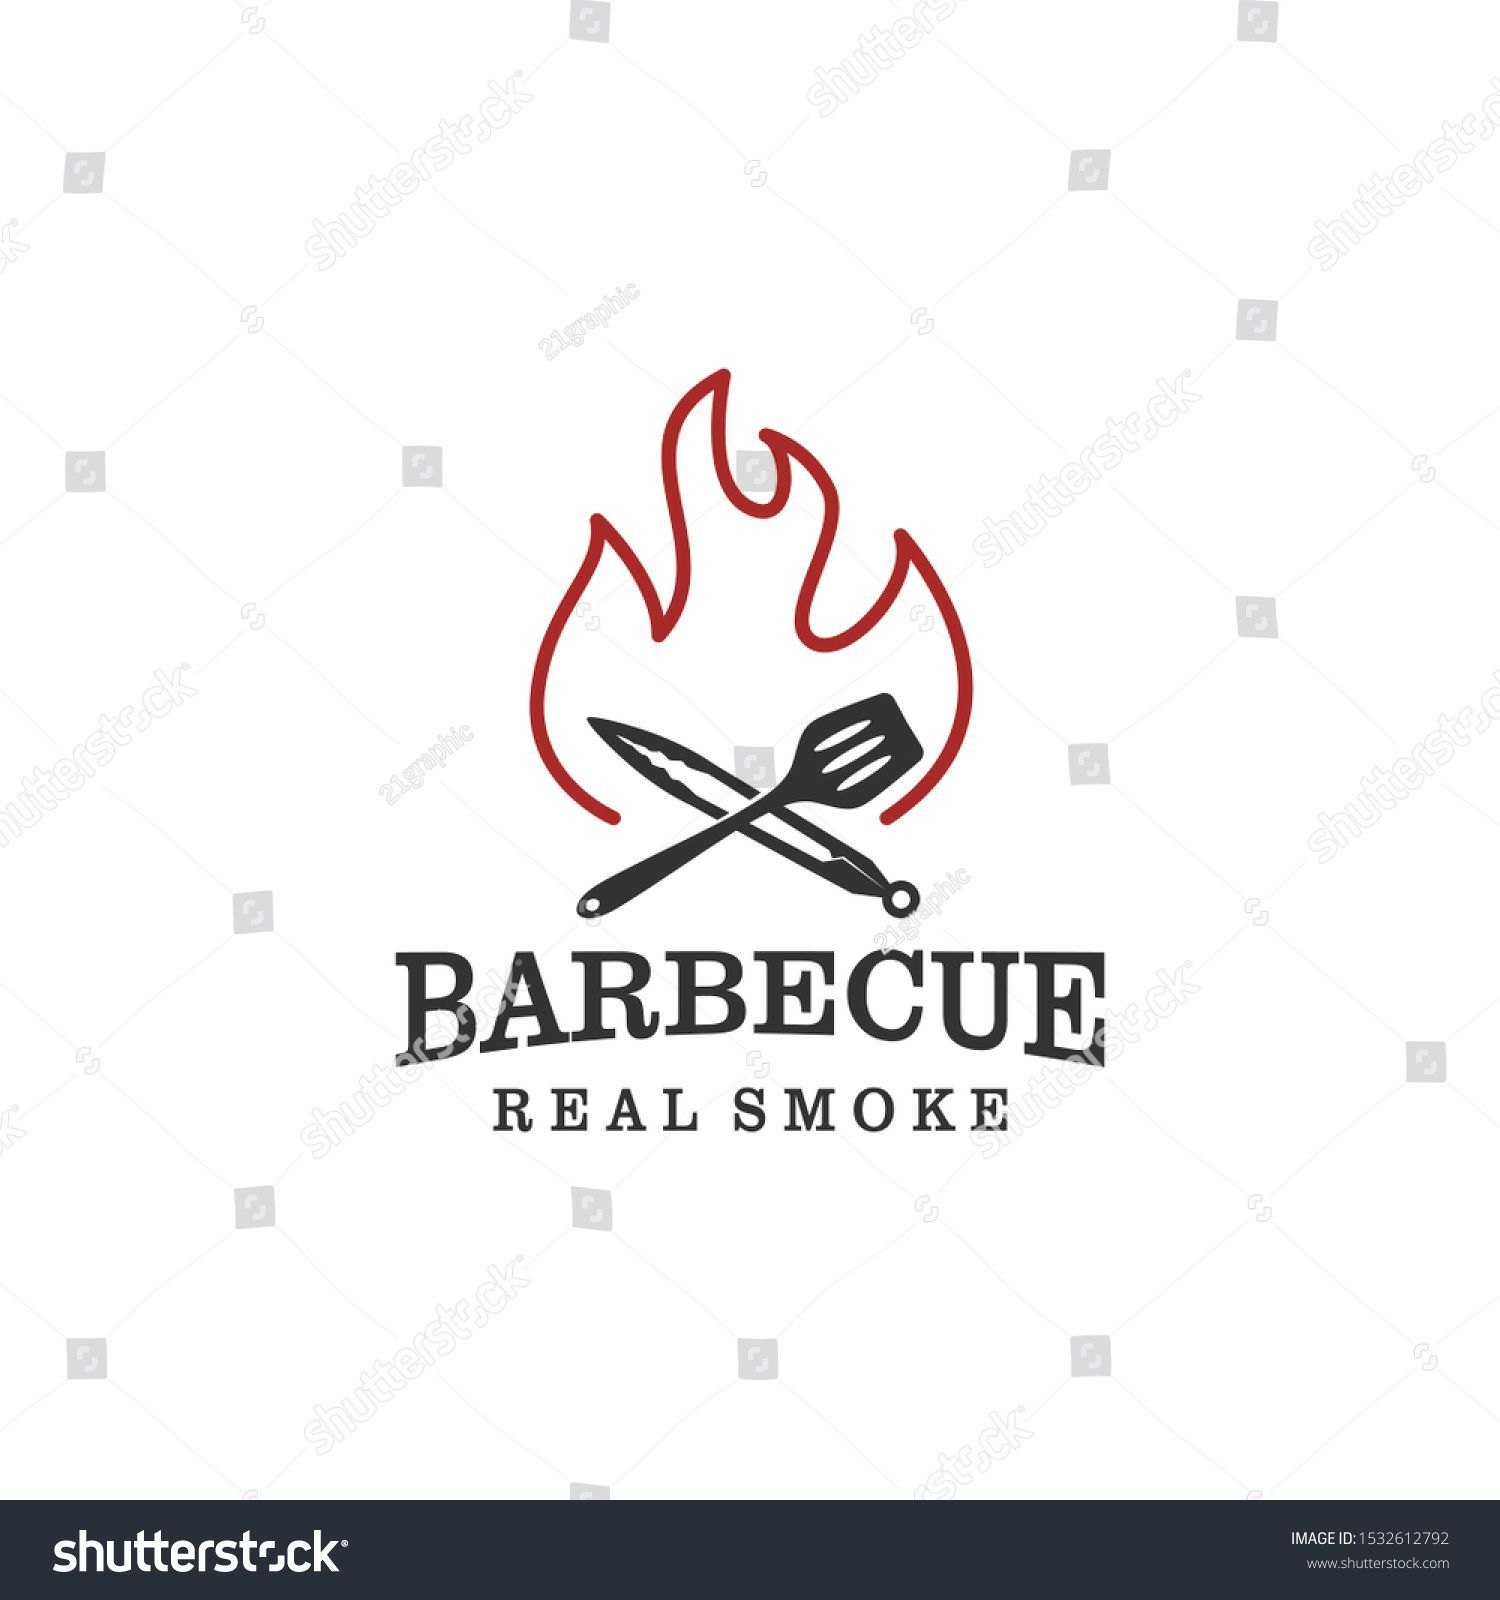 bbq grill restaurant food drink logo design  barbeque fire meat sausage spatula element Barbecue bbq grill restaurant food drink logo design  barbeque fire meat sausage s...